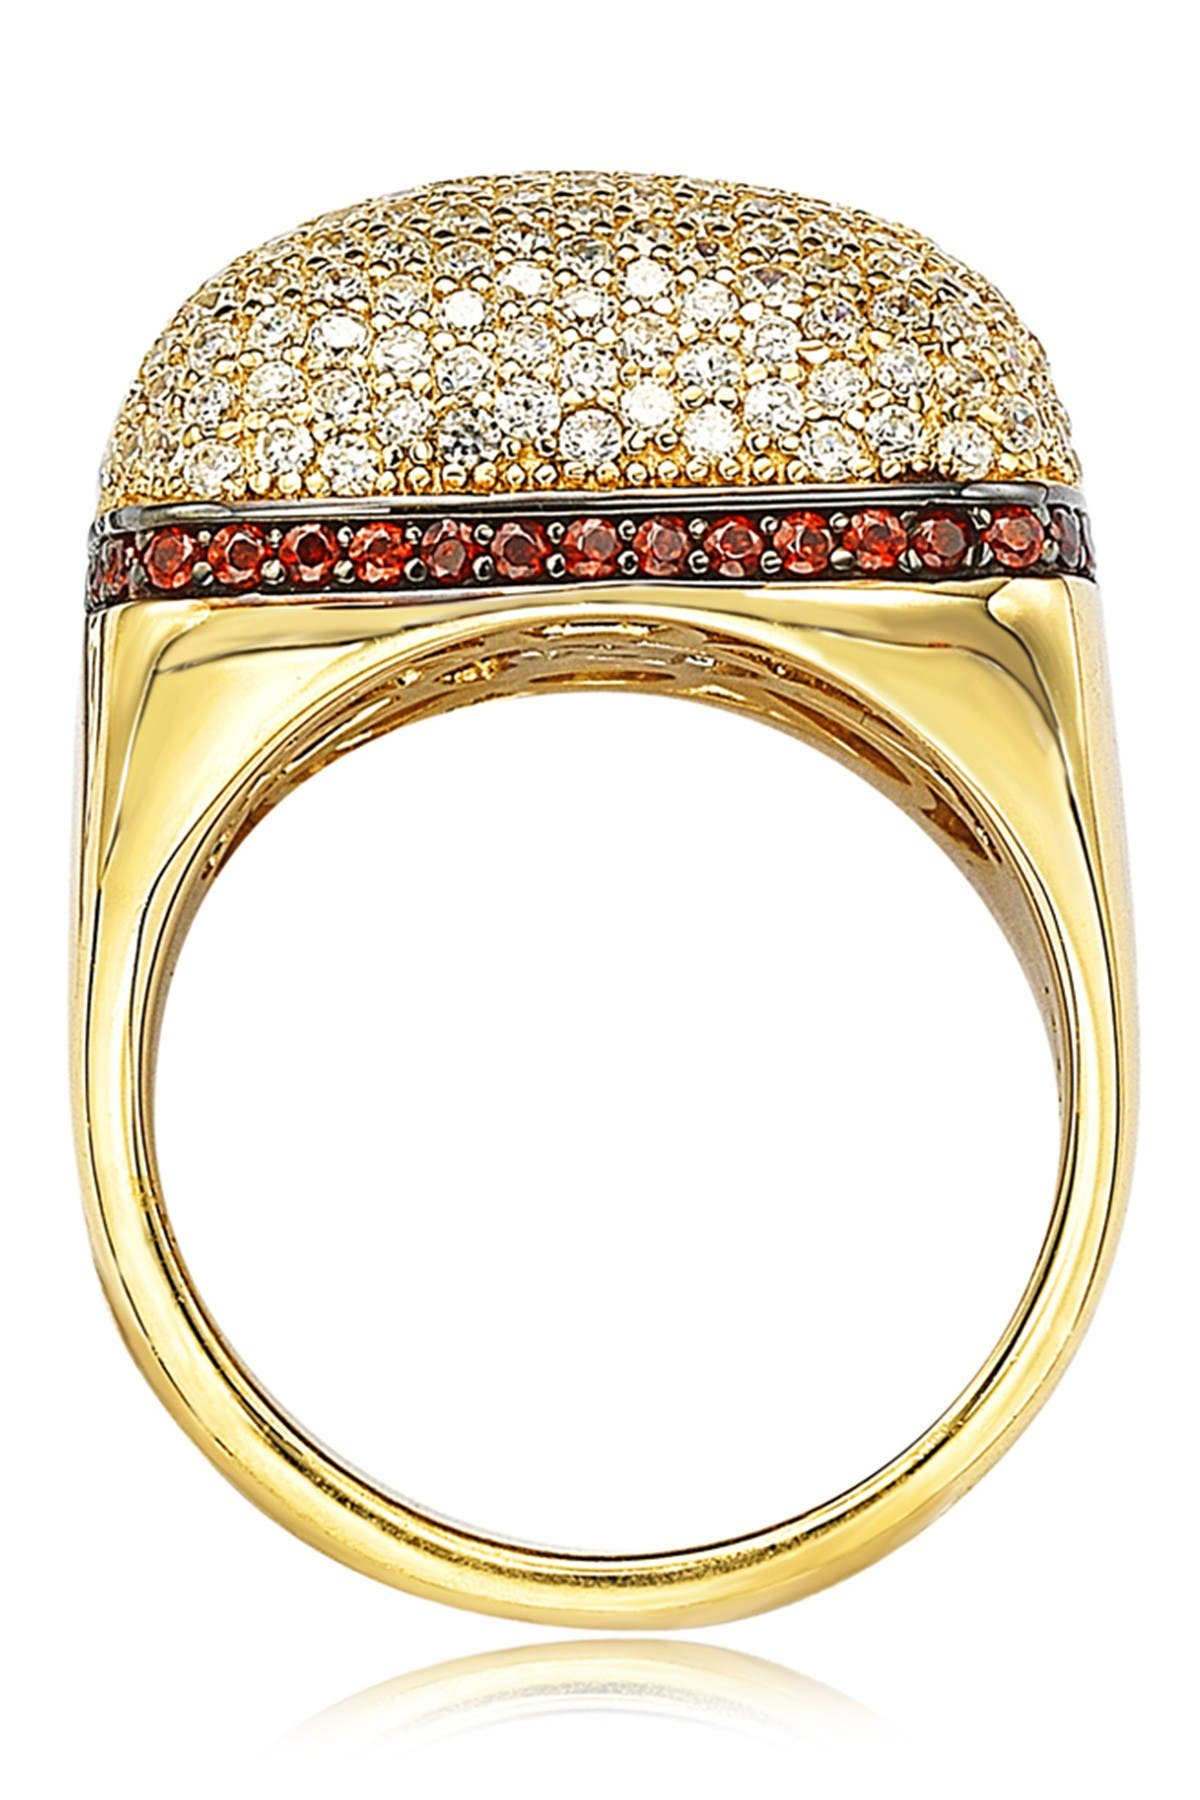 Image of Suzy Levian 14K Yellow Gold Plated Sterling Silver Halo Chocolate CZ Square Ring